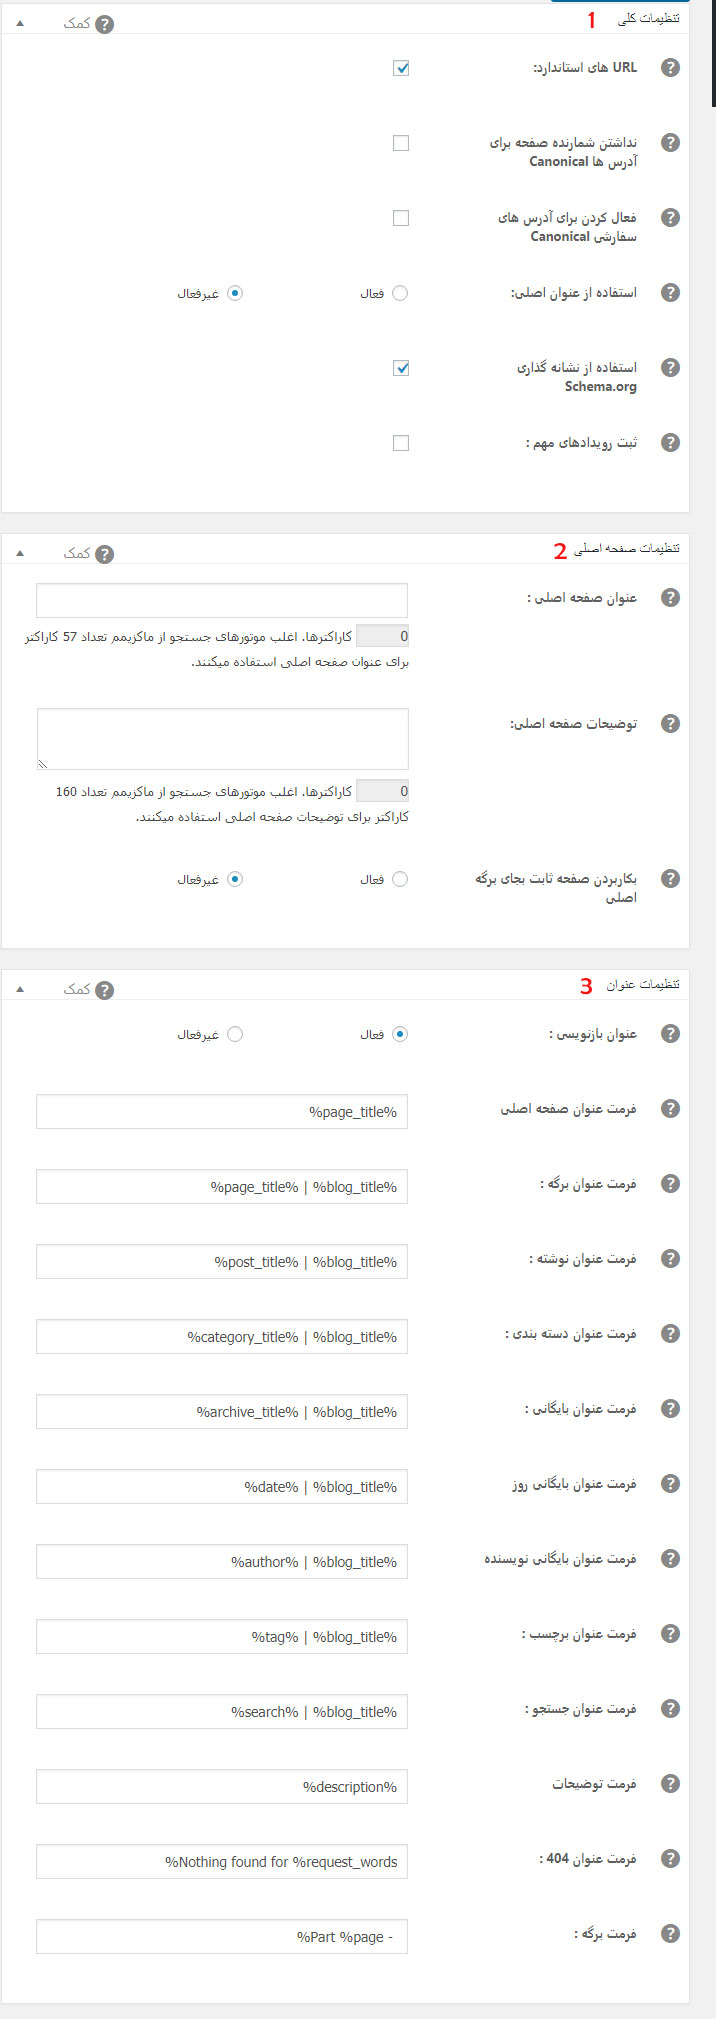 افزونه All in One SEO Pack بخش دوم